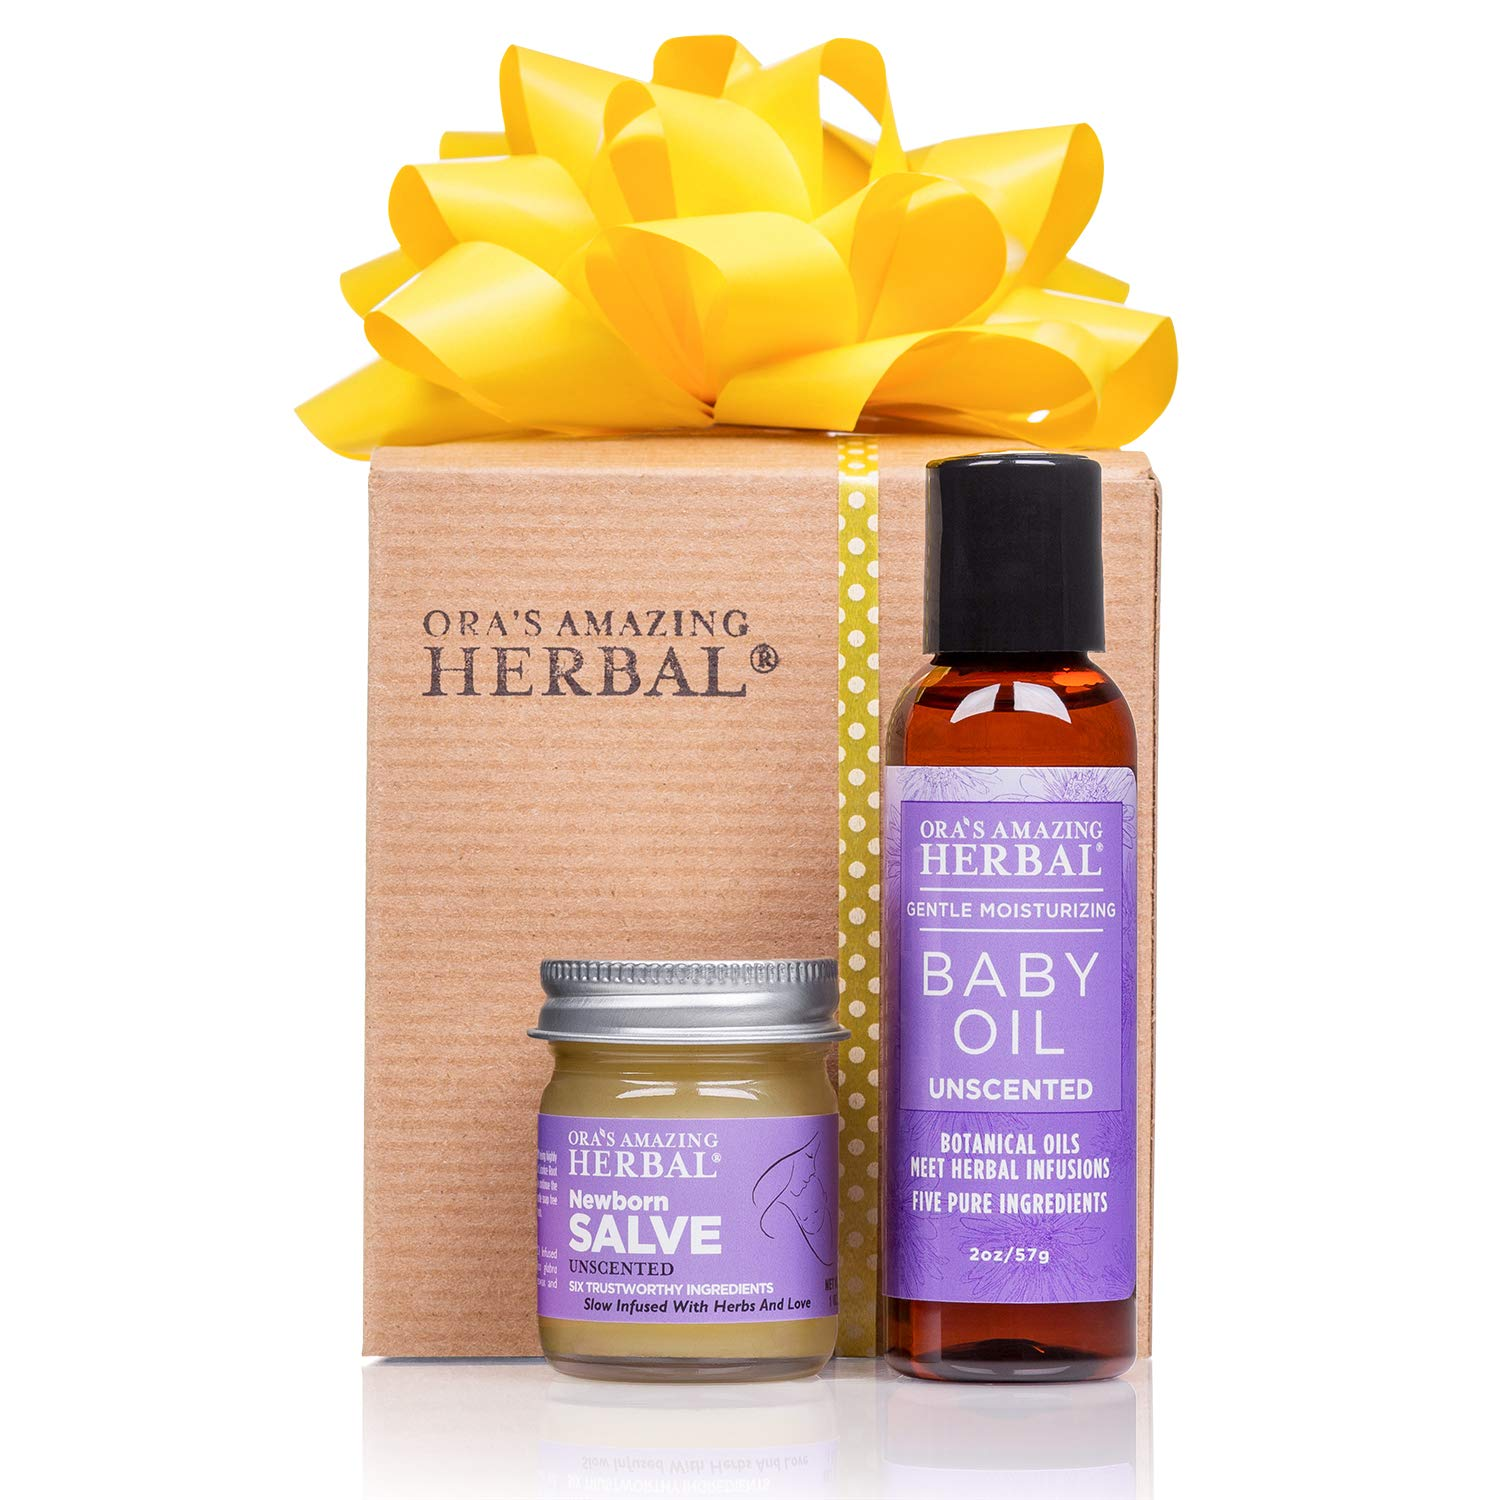 New Baby Gift, Natural Skincare for Newborn Baby, Baby Oil and Salve, Organic Calendula and Licorice Root Infused, Natural Baby Oil and Newborn Salve Paraben Free Diaper Cream